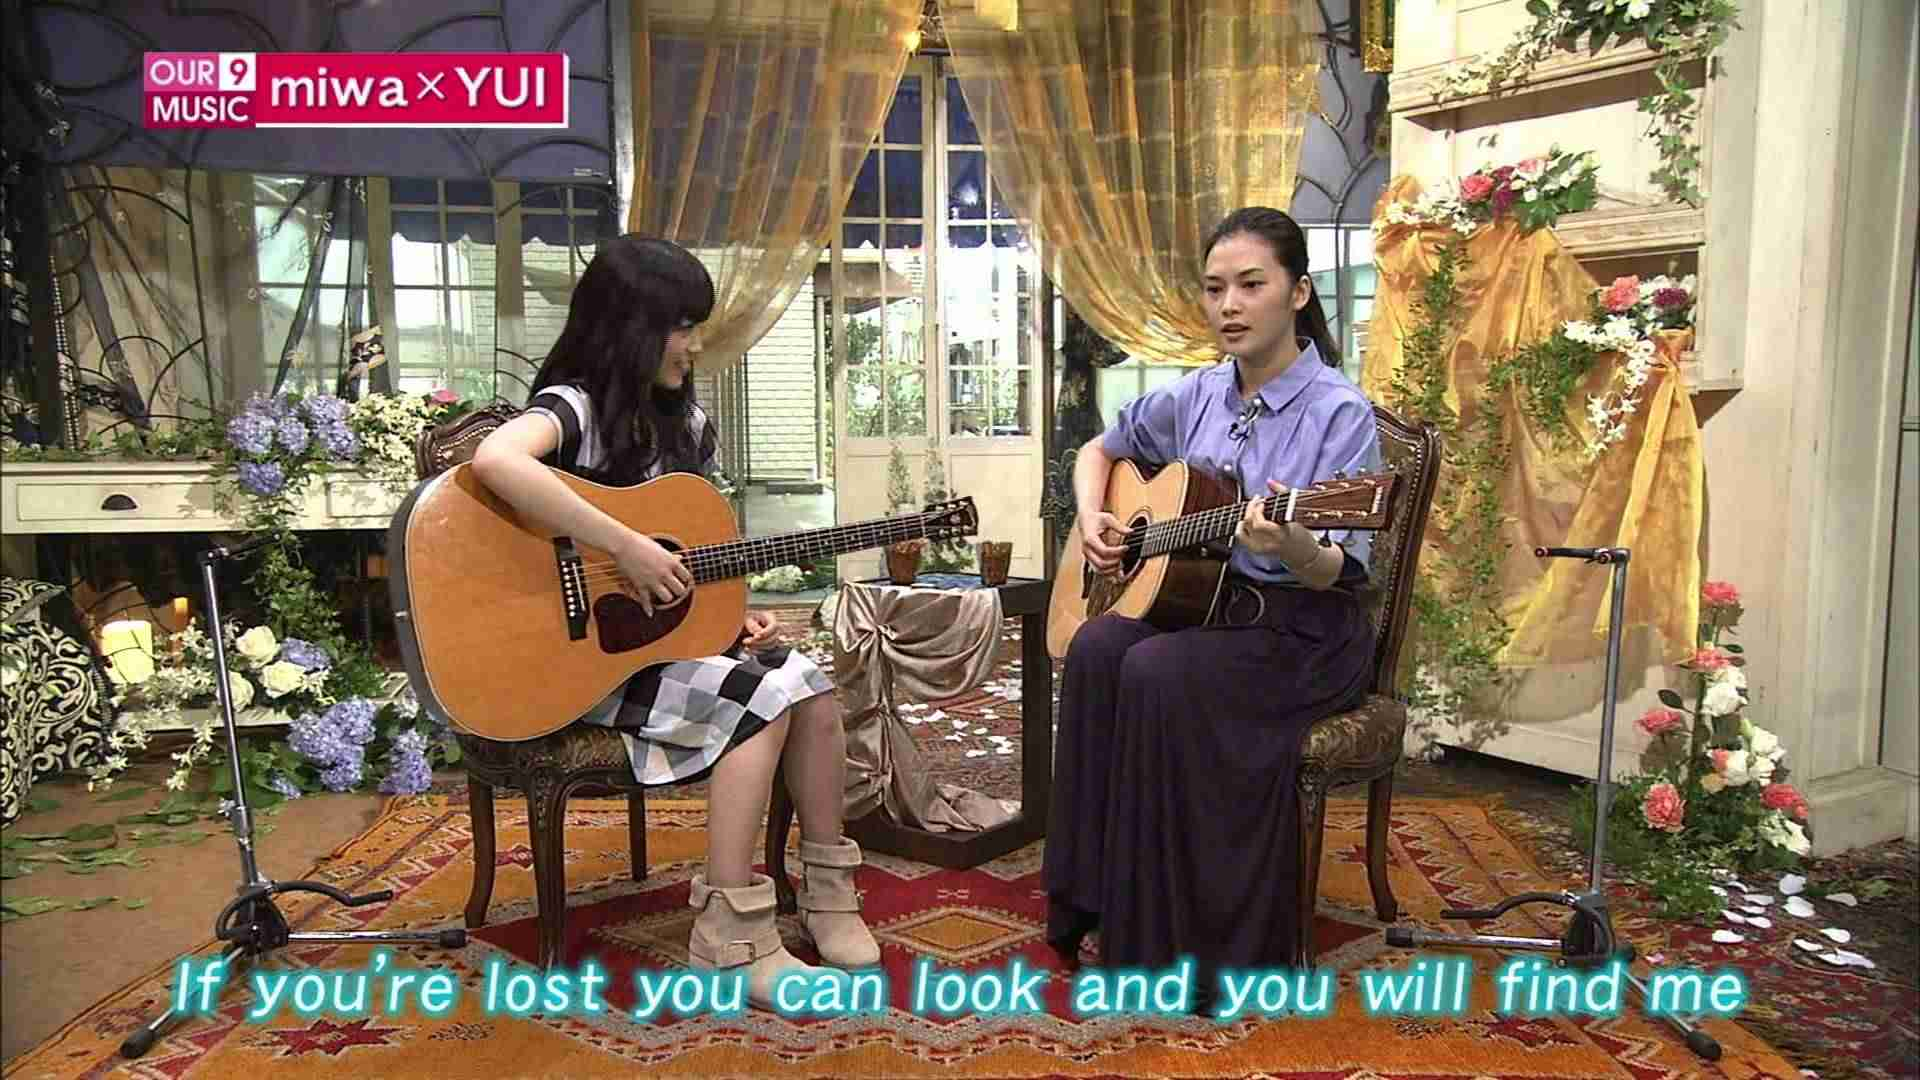 Yui x miwa - Time After Time (Cyndi Lauper Cover) - YouTube